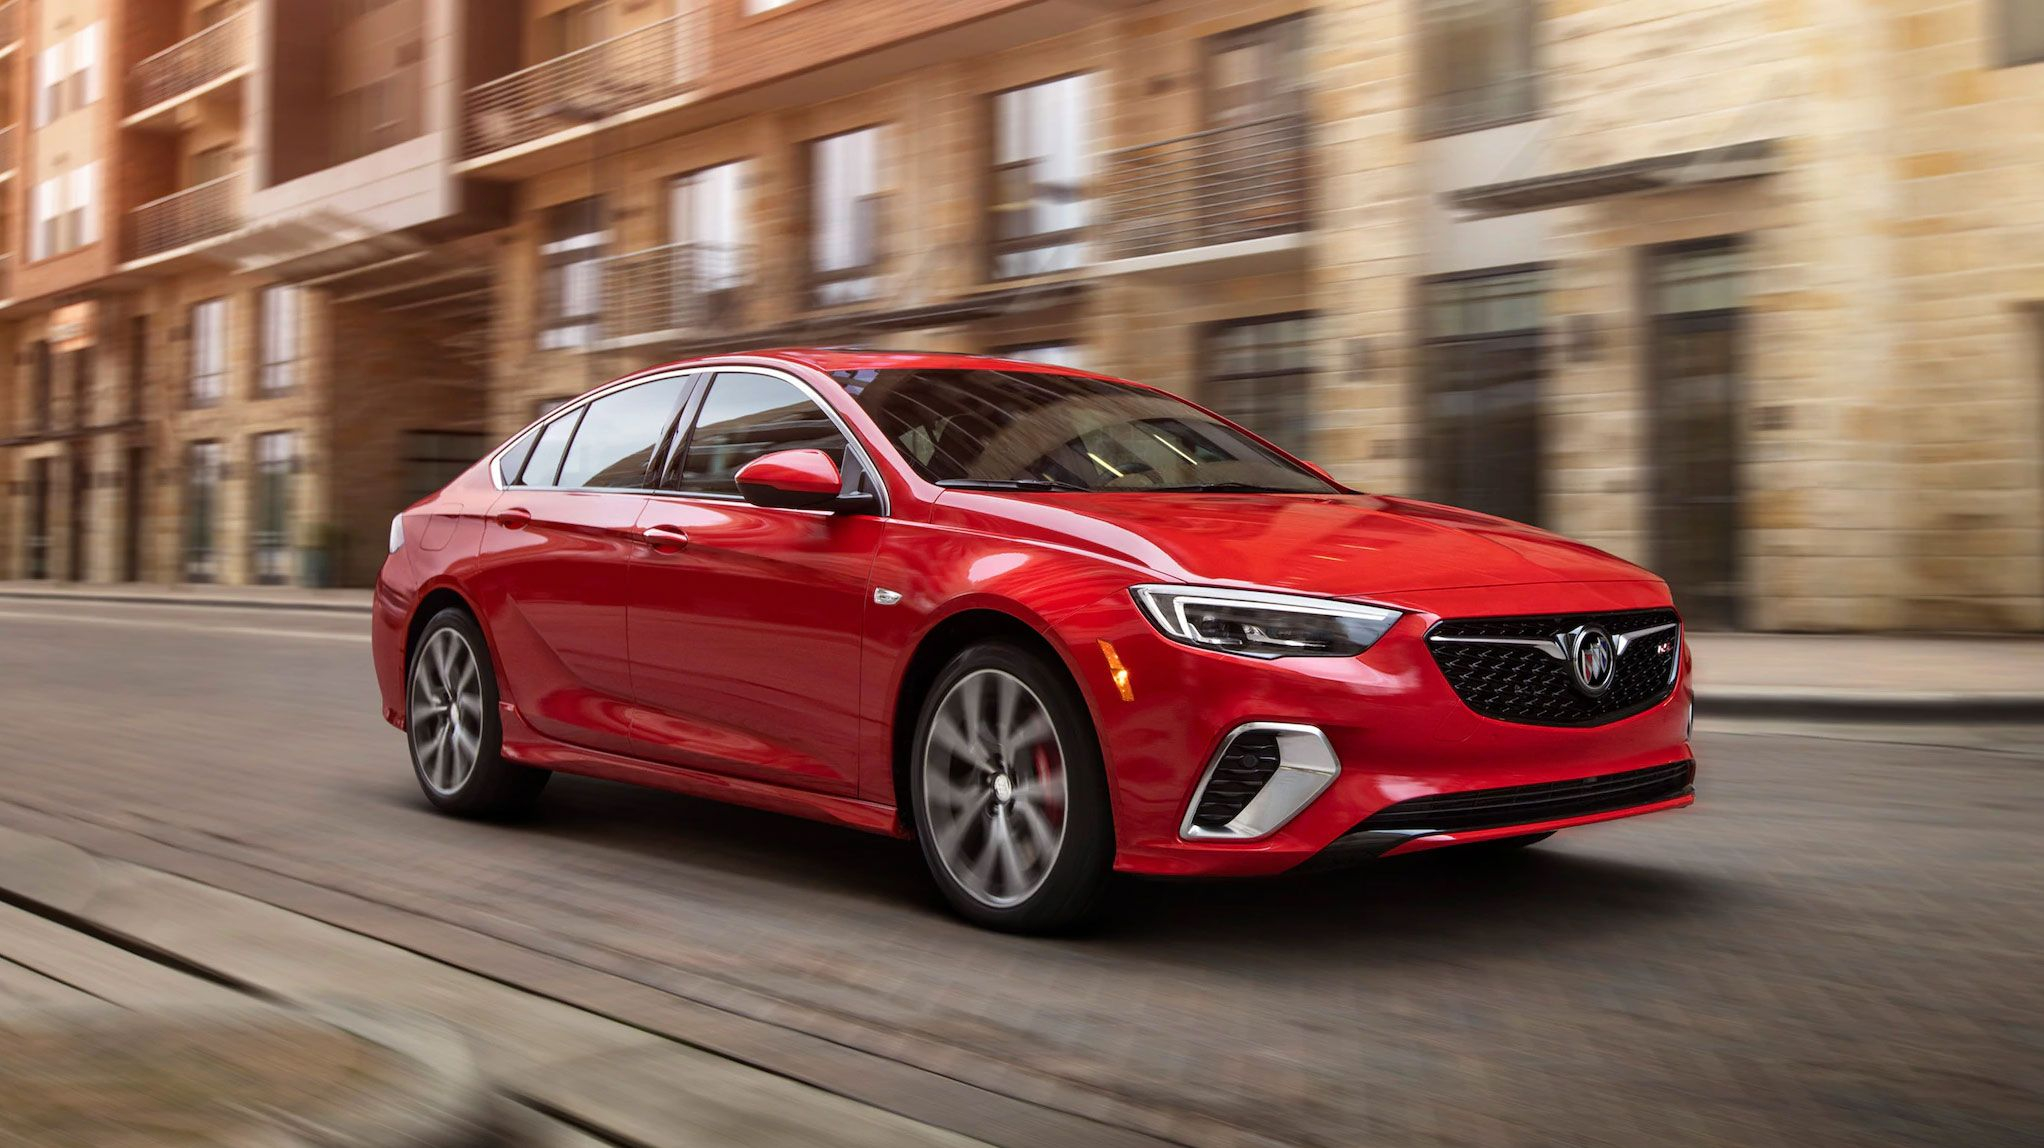 2020 Buick Regal Gs Review, Pricing, And Specs 2021 Buick Regal Msrp, Models, Manual